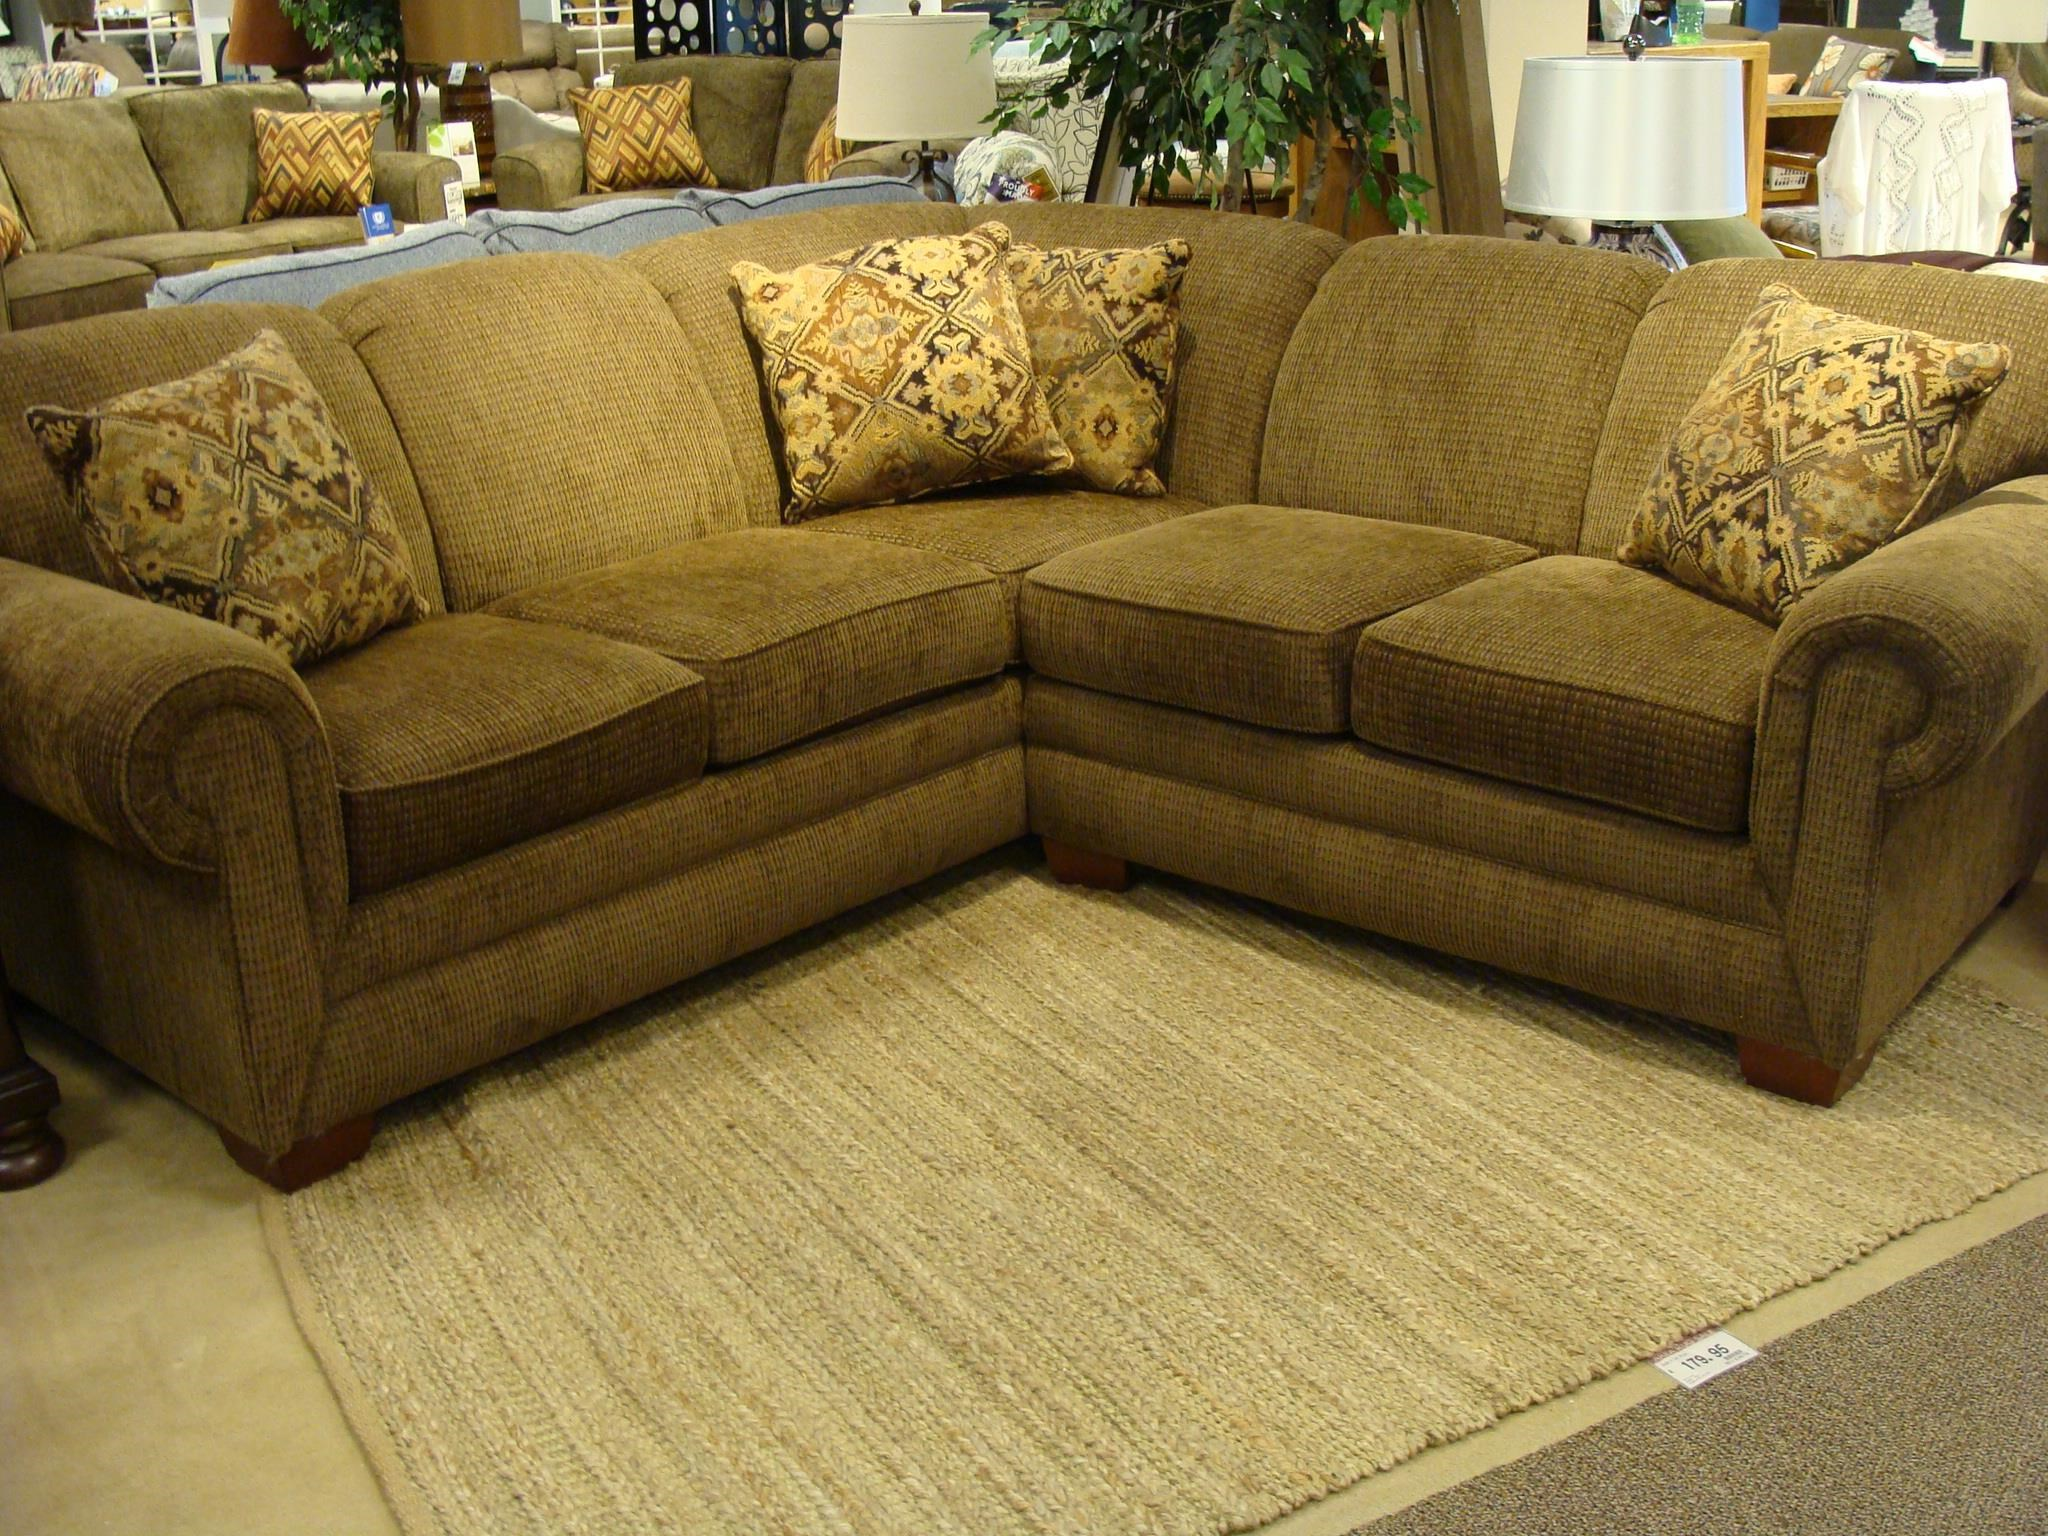 England Monroe Four Seat Corner Sectional - Item Number: 1430-28+64